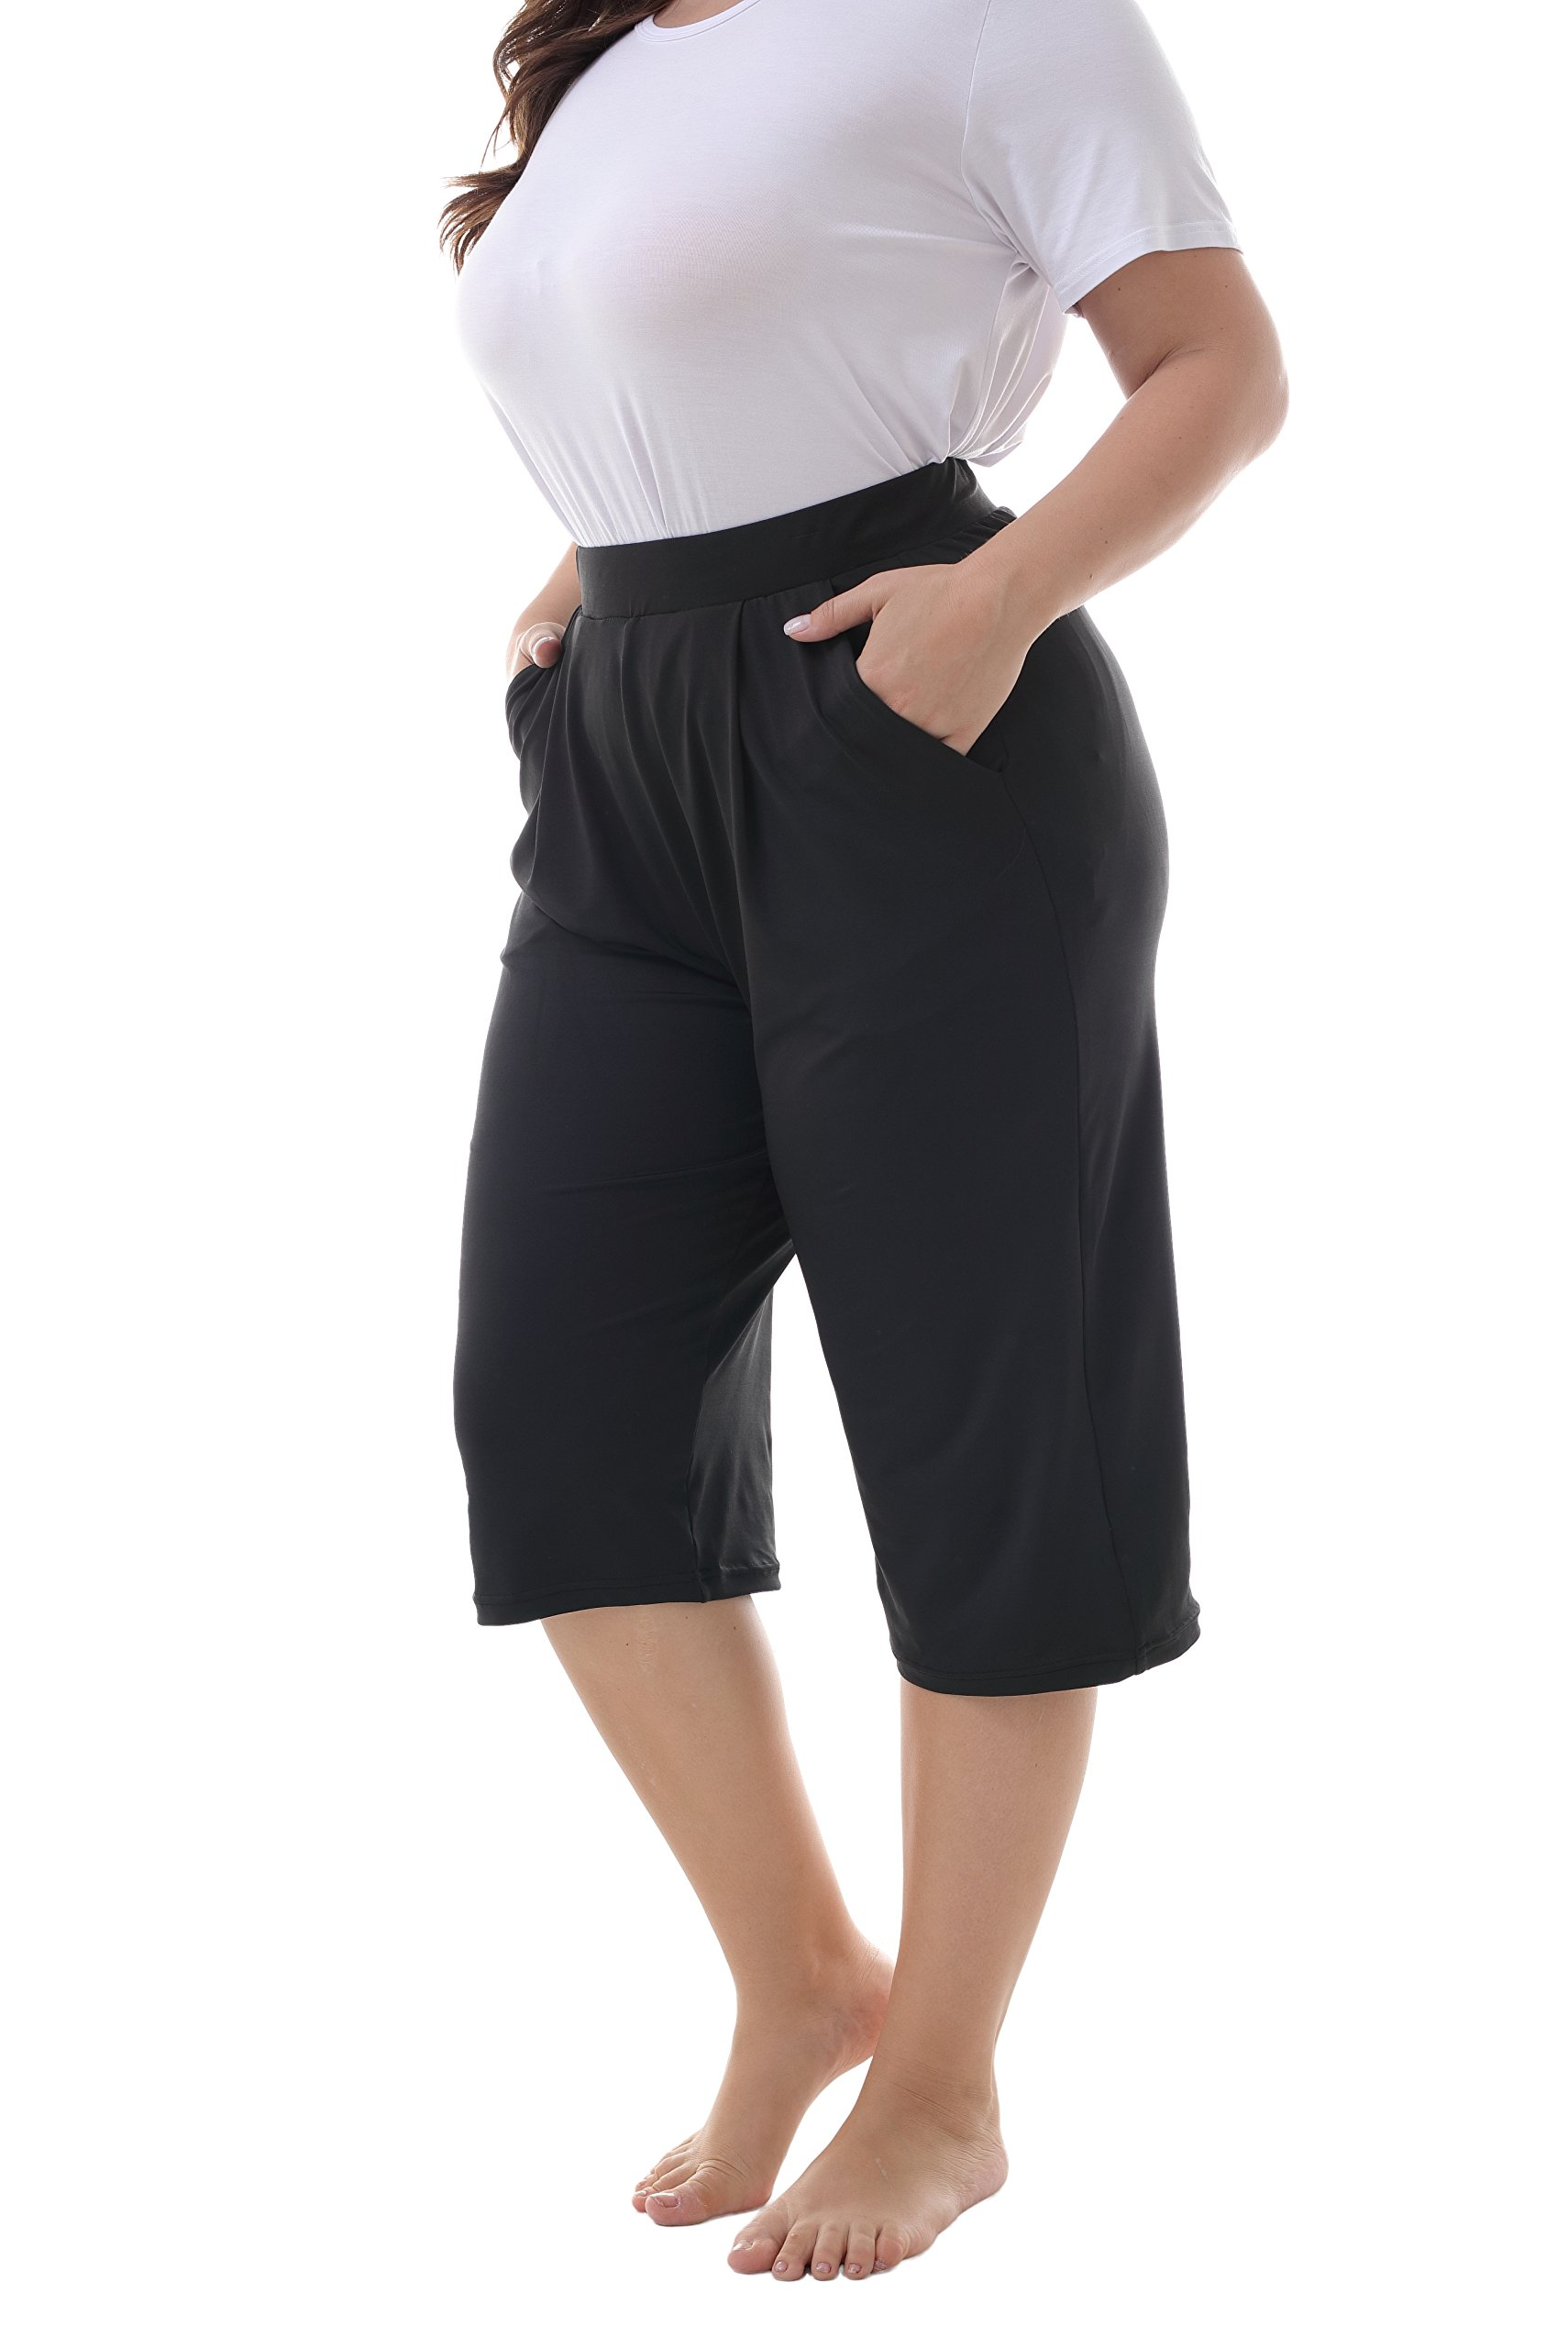 ZERDOCEAN Women's Plus Size Stretchy Relaxed Lounge Capris with Pockets Black 2X